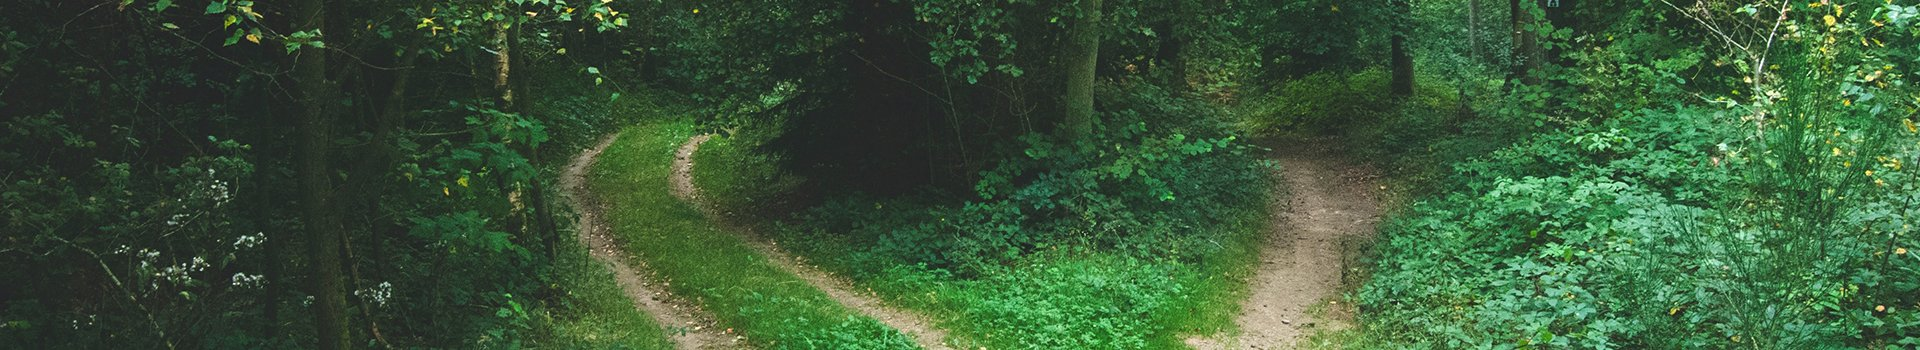 Forked Forest Path 1920X350